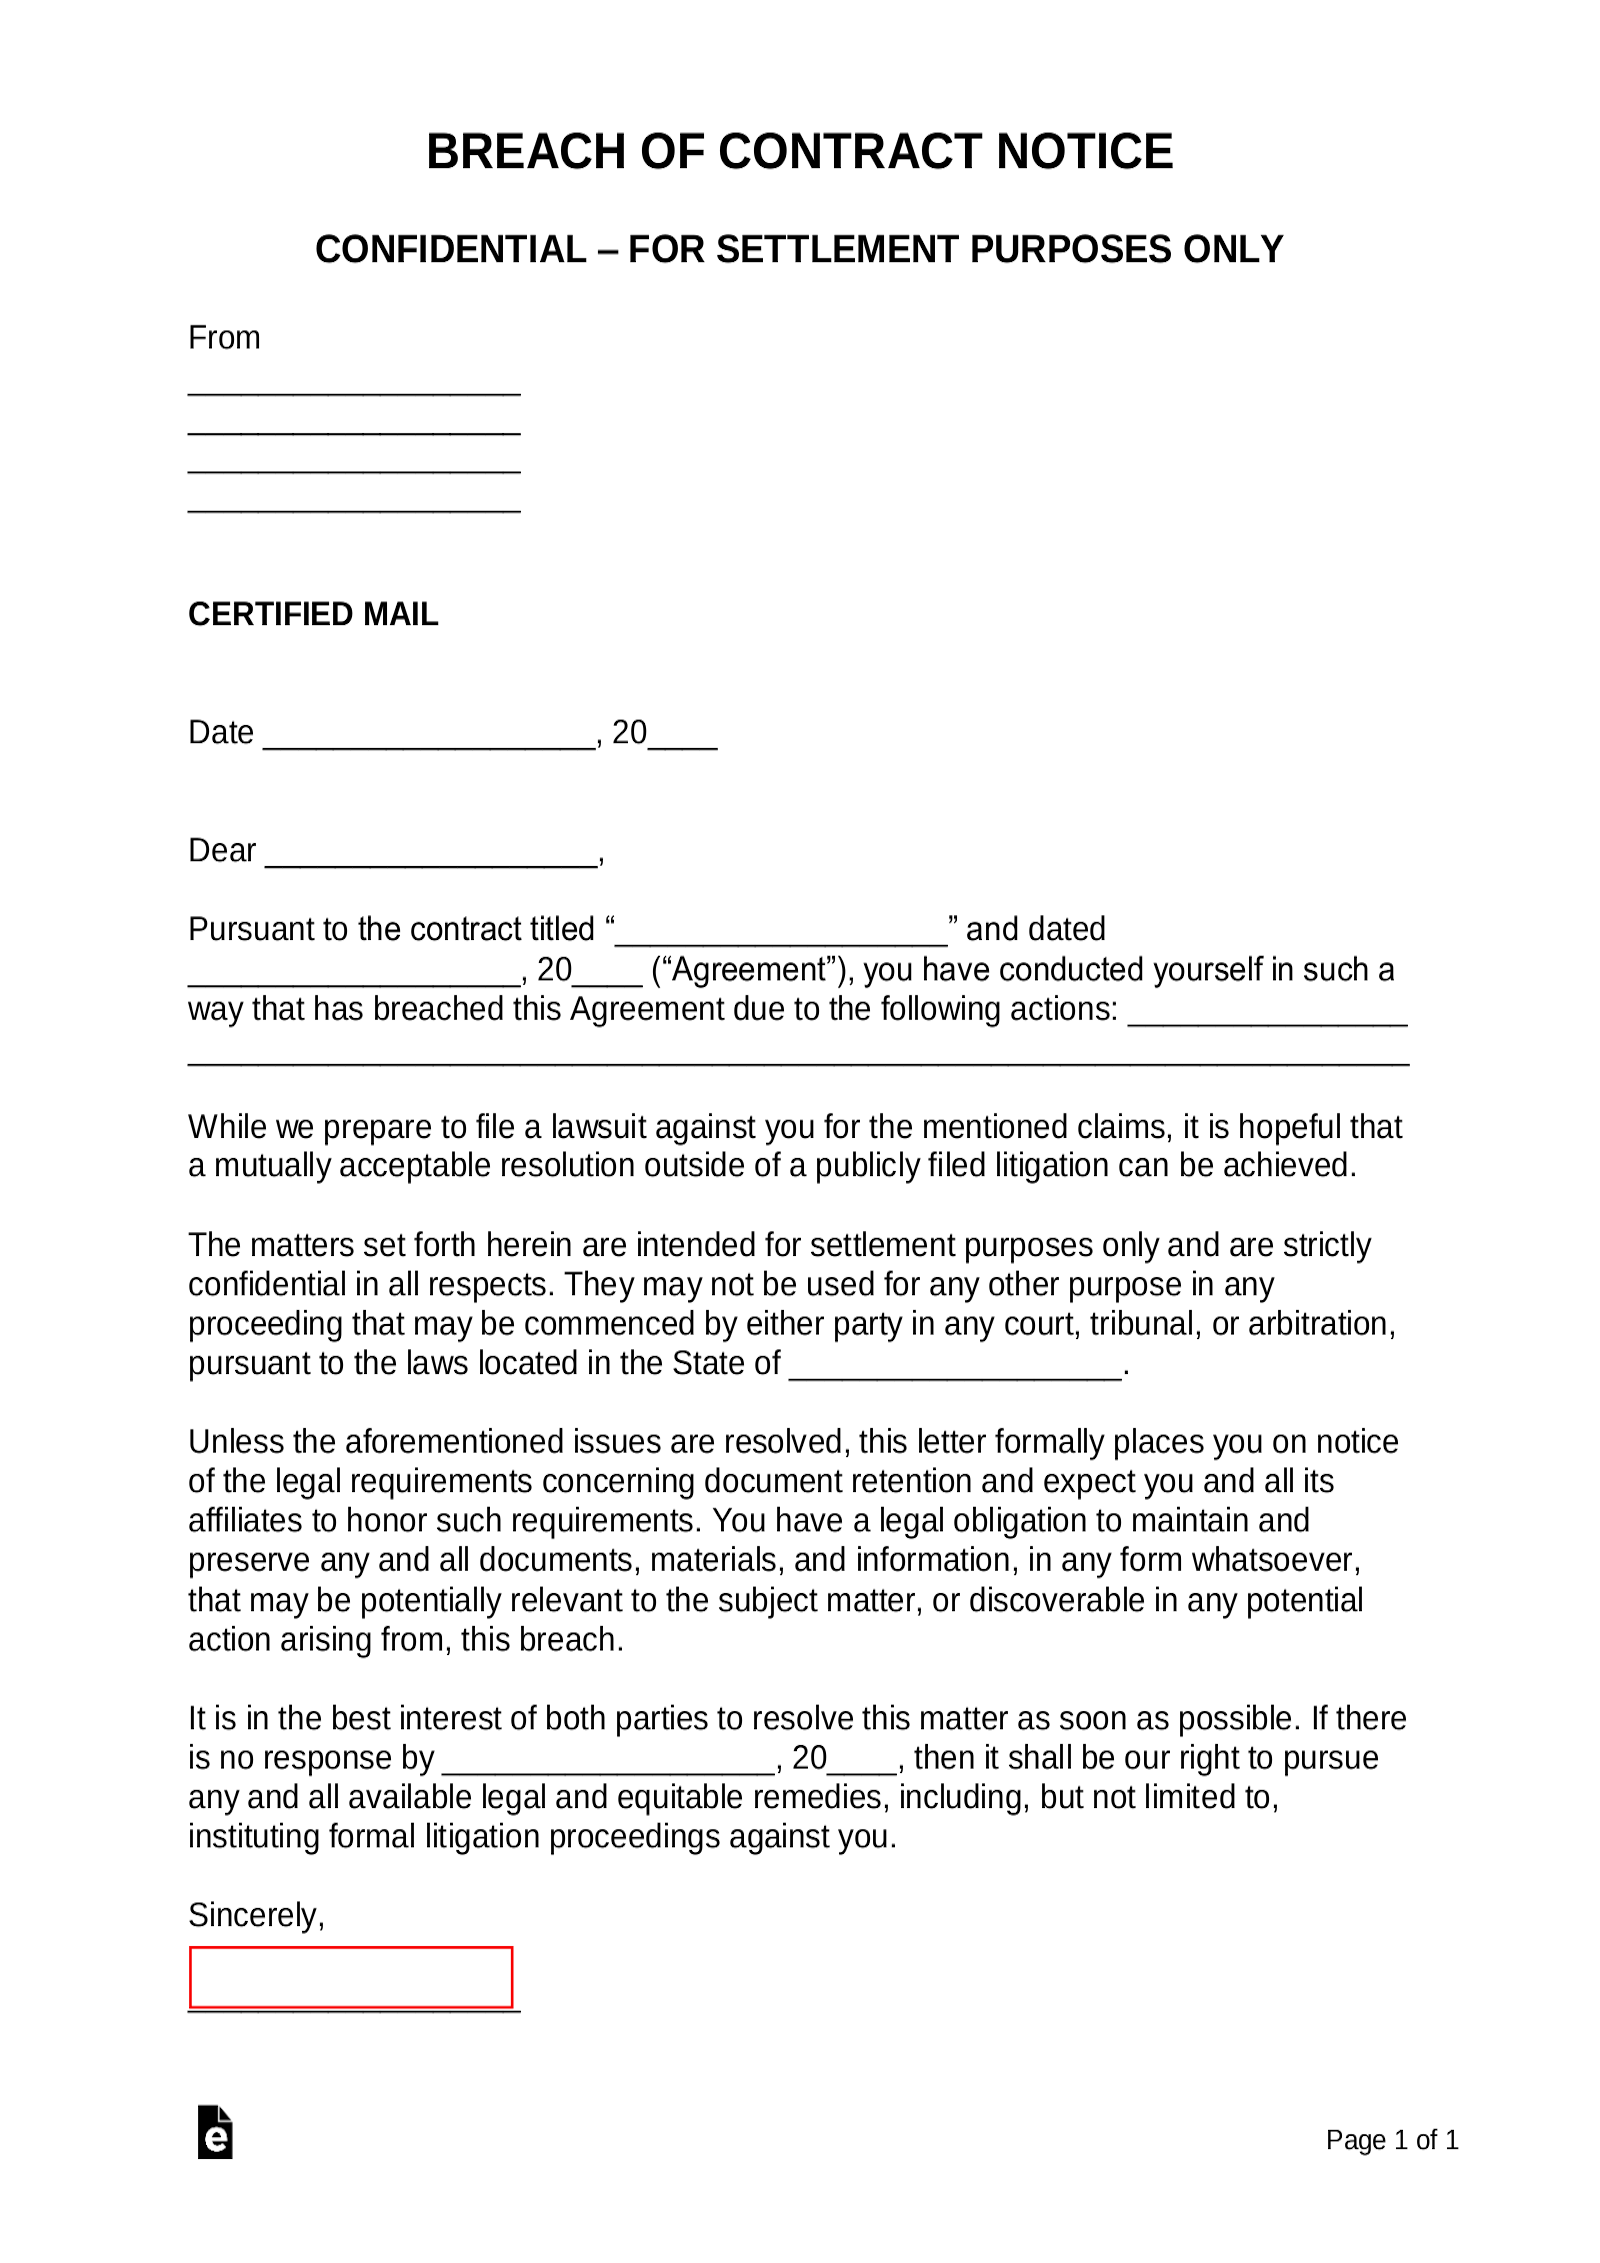 Breach-of-Contract-Demand-Letter Demand Letter Template For Breach Of Contract on before lawsuit,